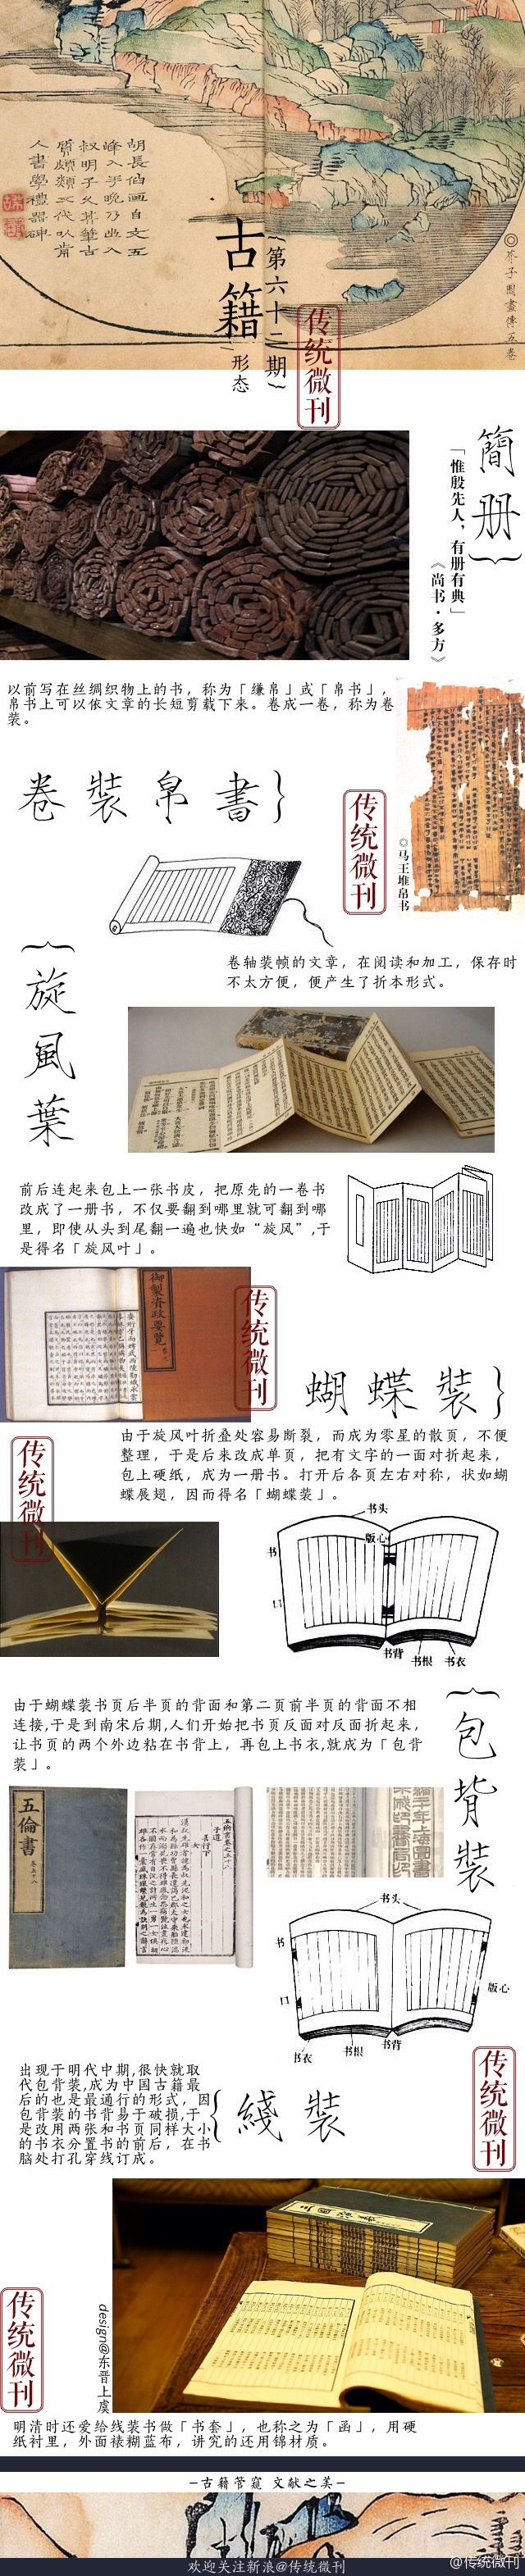 The different designs of traditional Chinese book-binding.